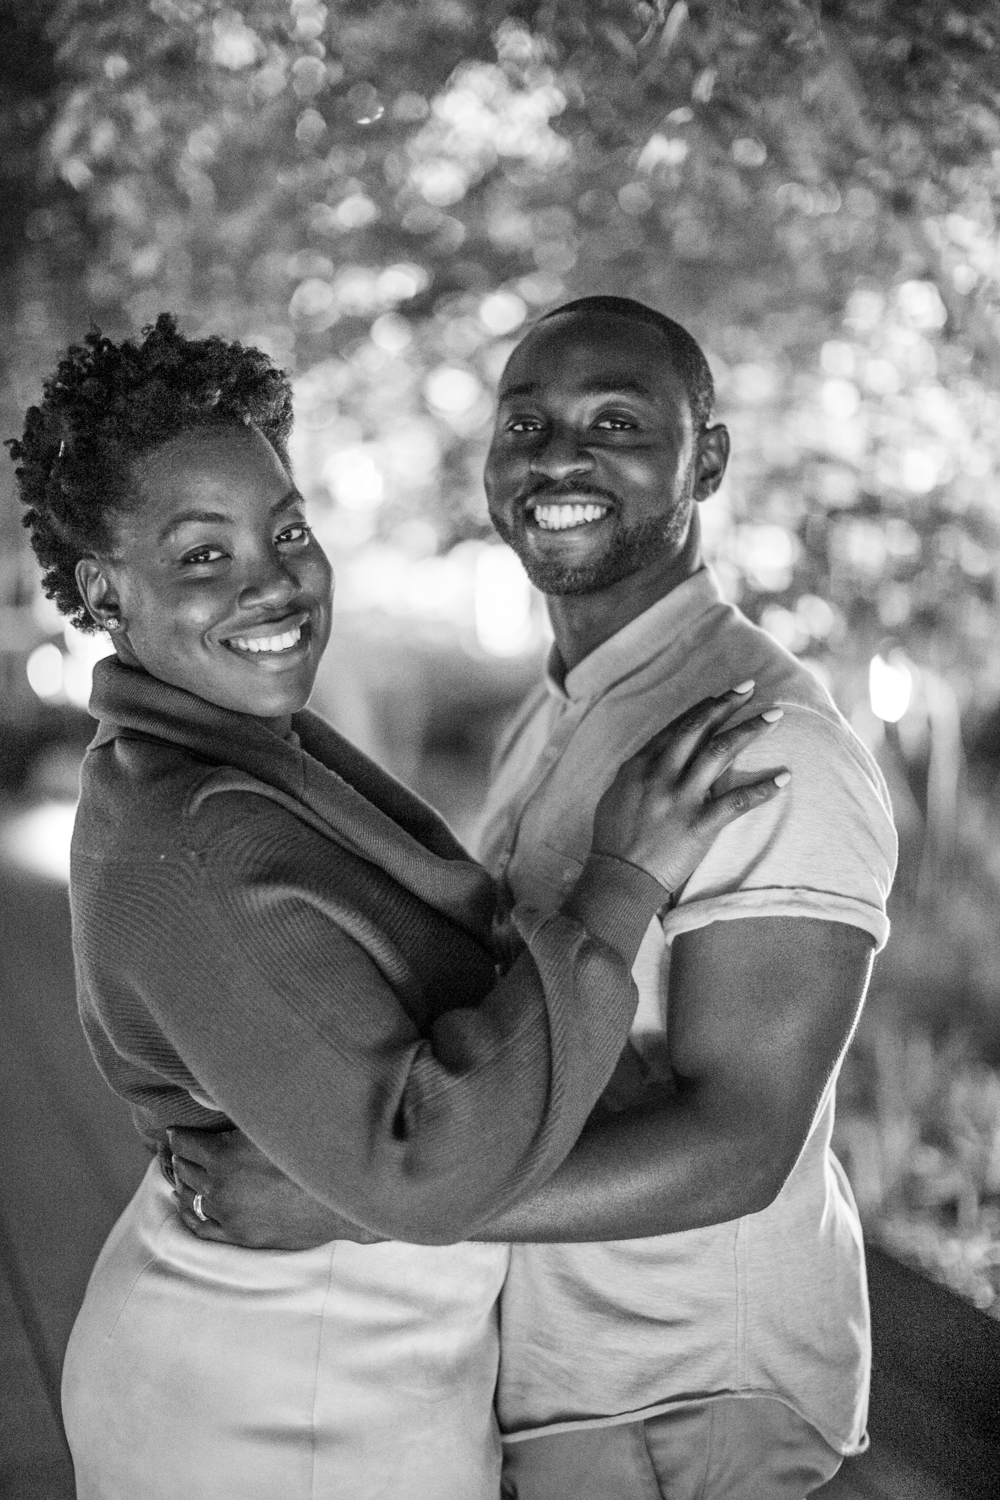 Black and white Photograph of NYC engaged couple